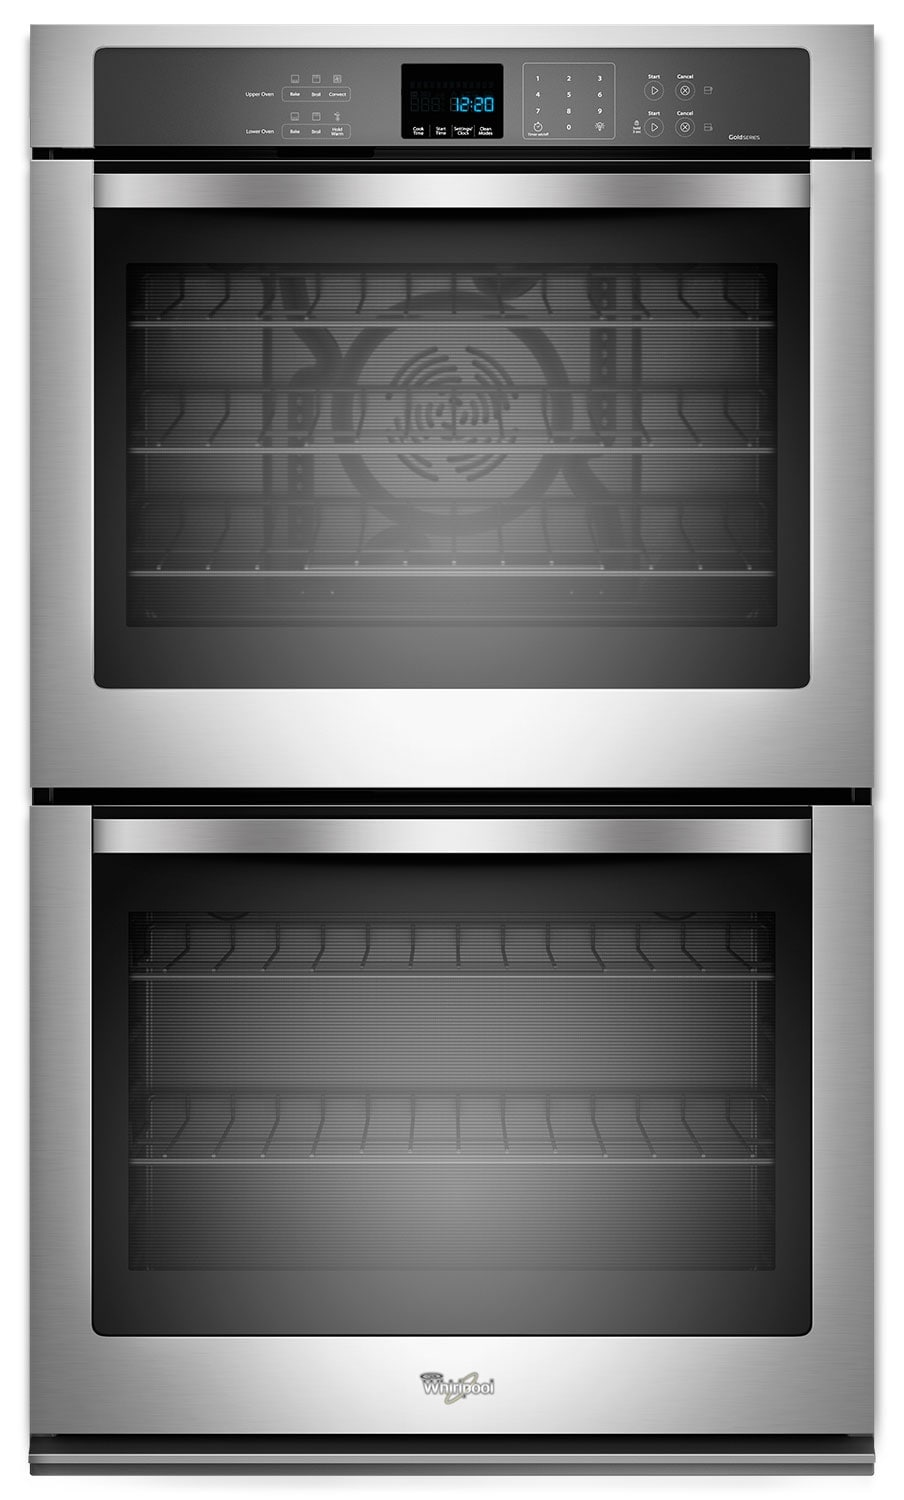 Whirlpool Stainless Steel Convection Double Wall Oven (10 Cu. Ft.) - WOD93EC0AS